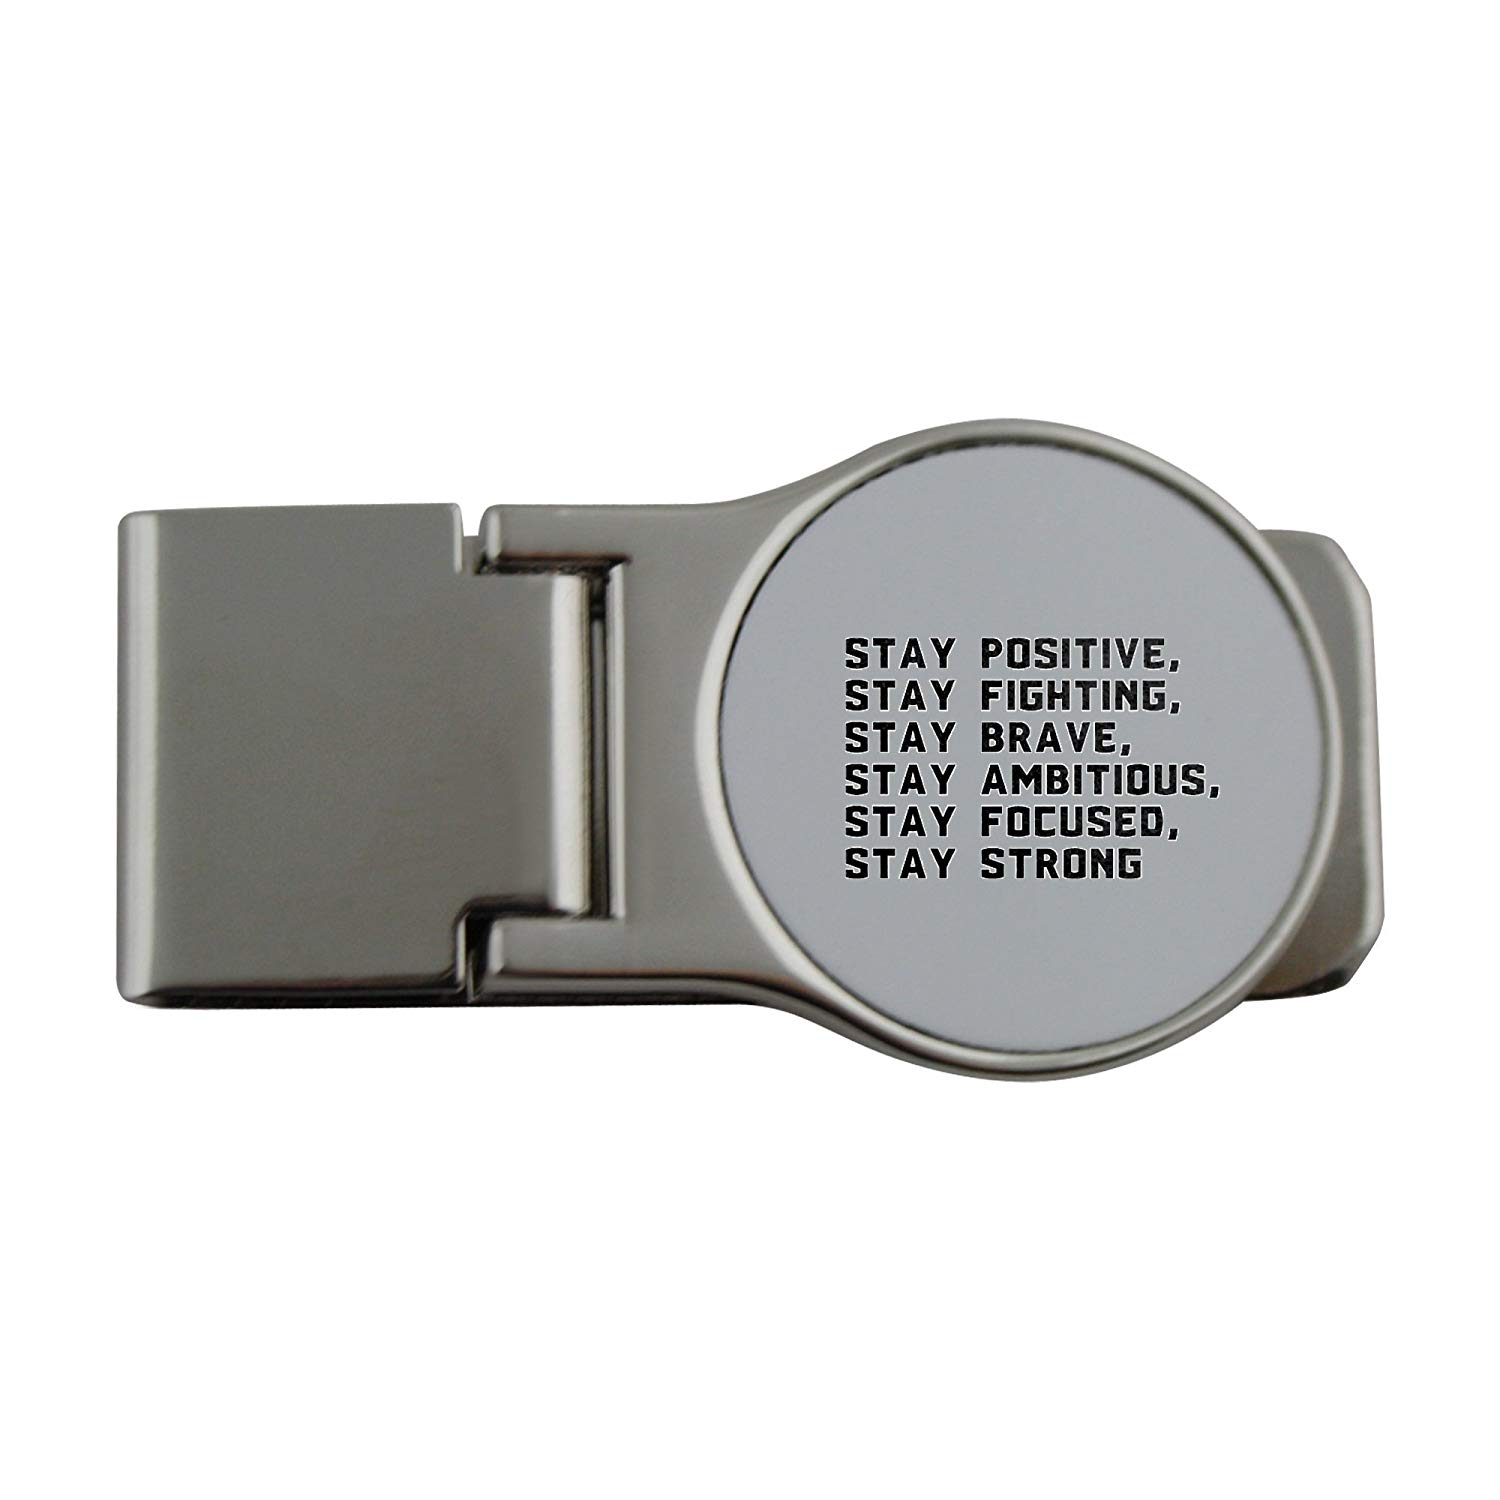 Metal money clip with Stay positive stay fighting stay brave stay ambitious stay focused stay strong